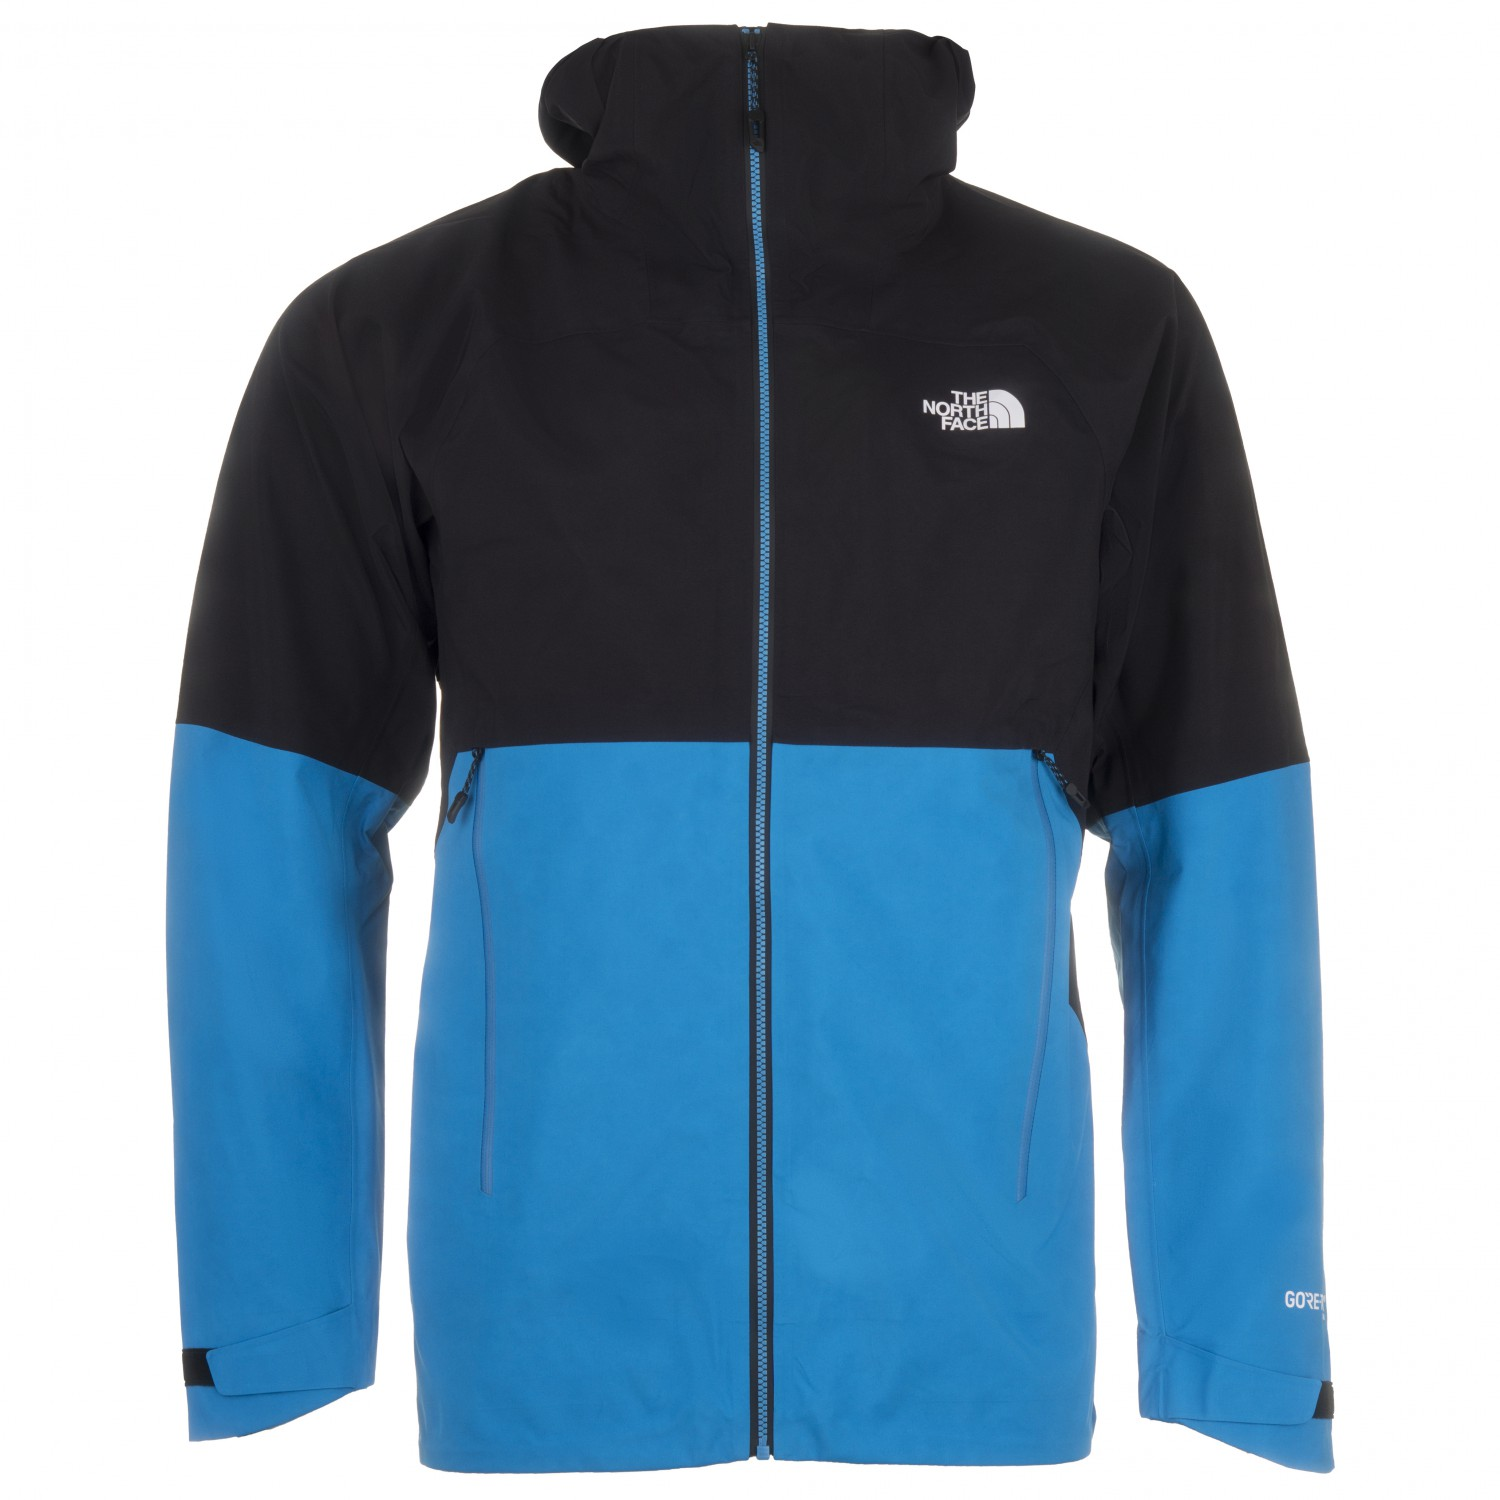 998b8fd1 The North Face Impendor Shell Jacket - Chaqueta hardshell Hombre ...